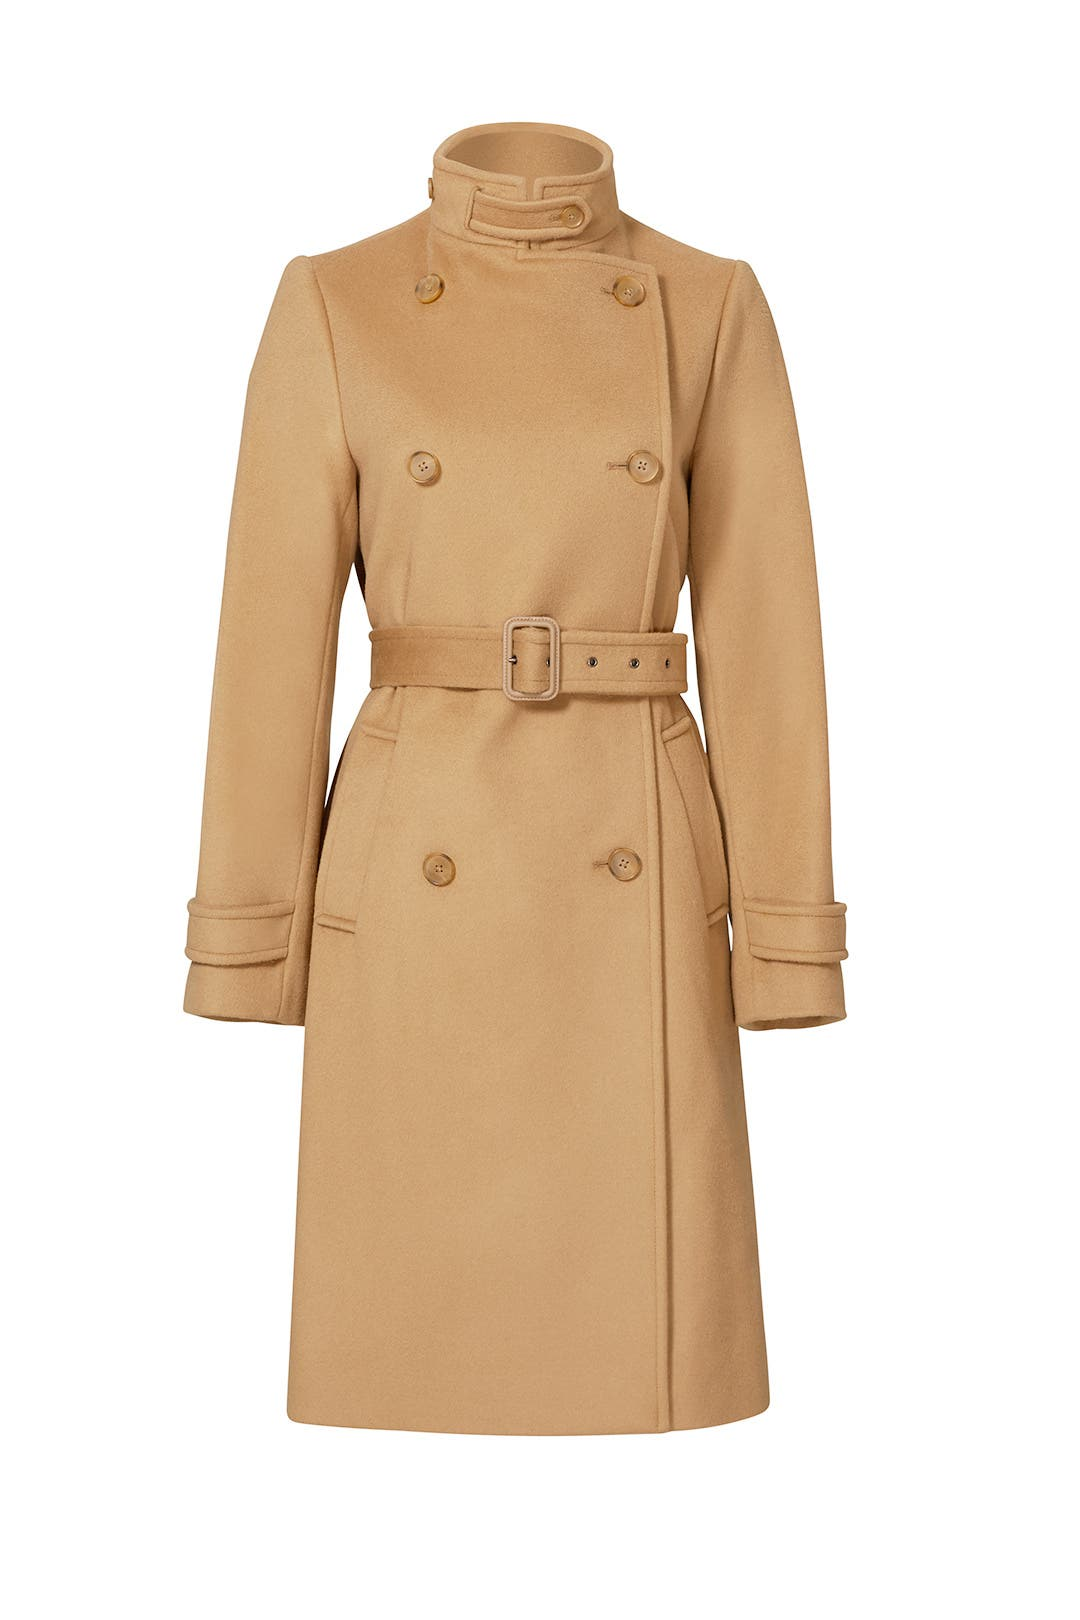 Wool Camel Trench Coat by VINCE. for $125 | Rent the Runway